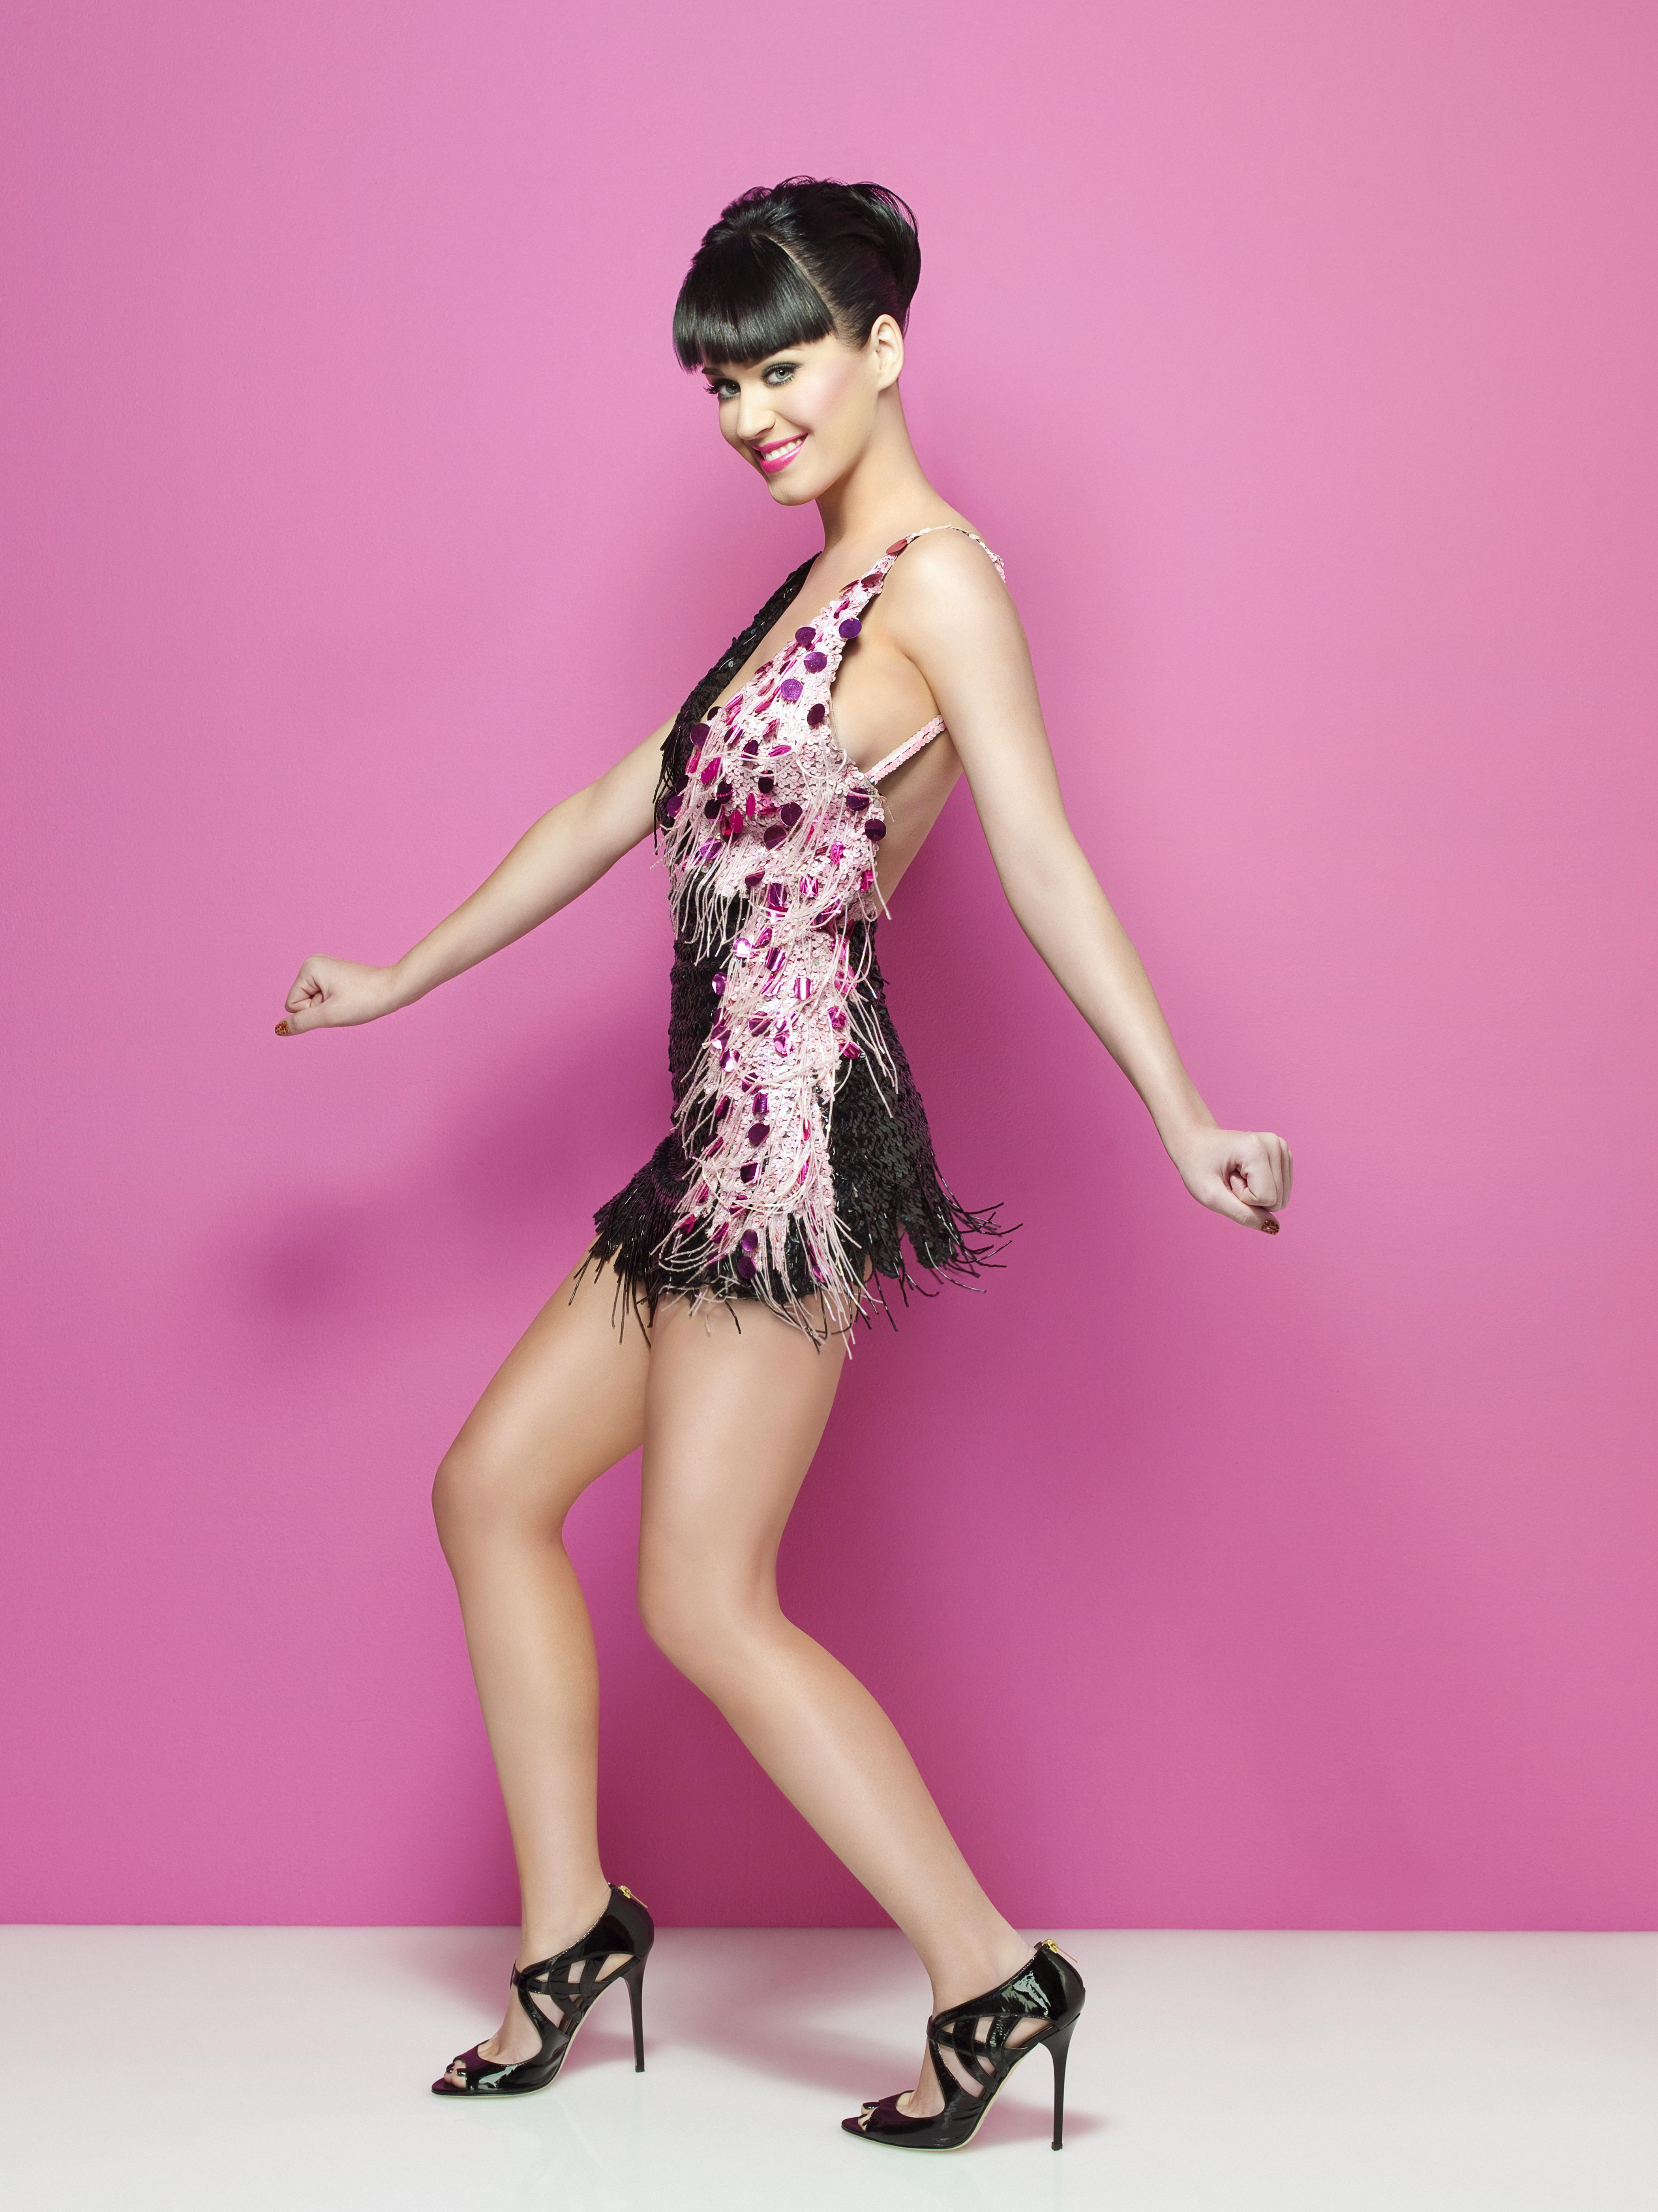 Katy Perry Wallpaper on Katy Perry Hd Wallpaper   Celebrity   Actress   655904